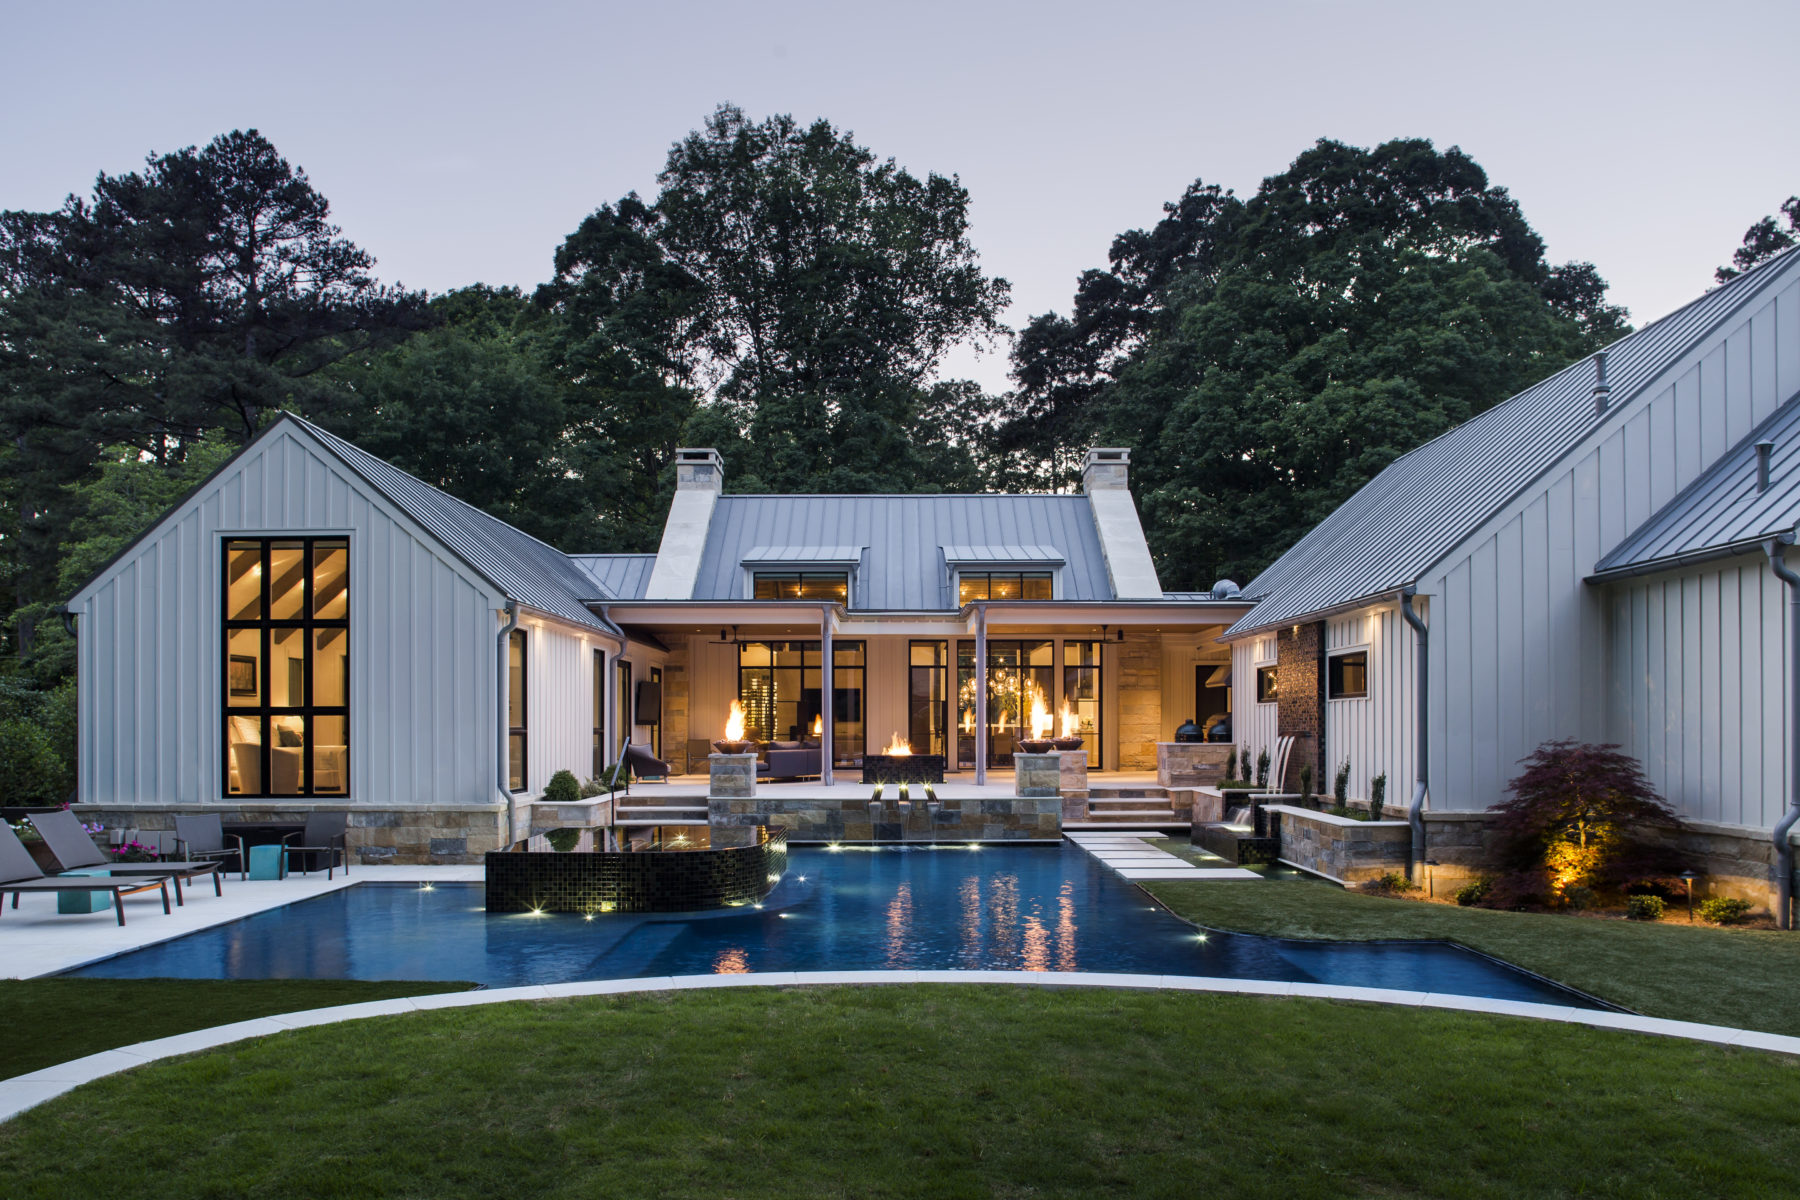 By Harrison Design Atlanta, triple height windows, a spacious covered terrace and oasis style pool create an outdoor paradise